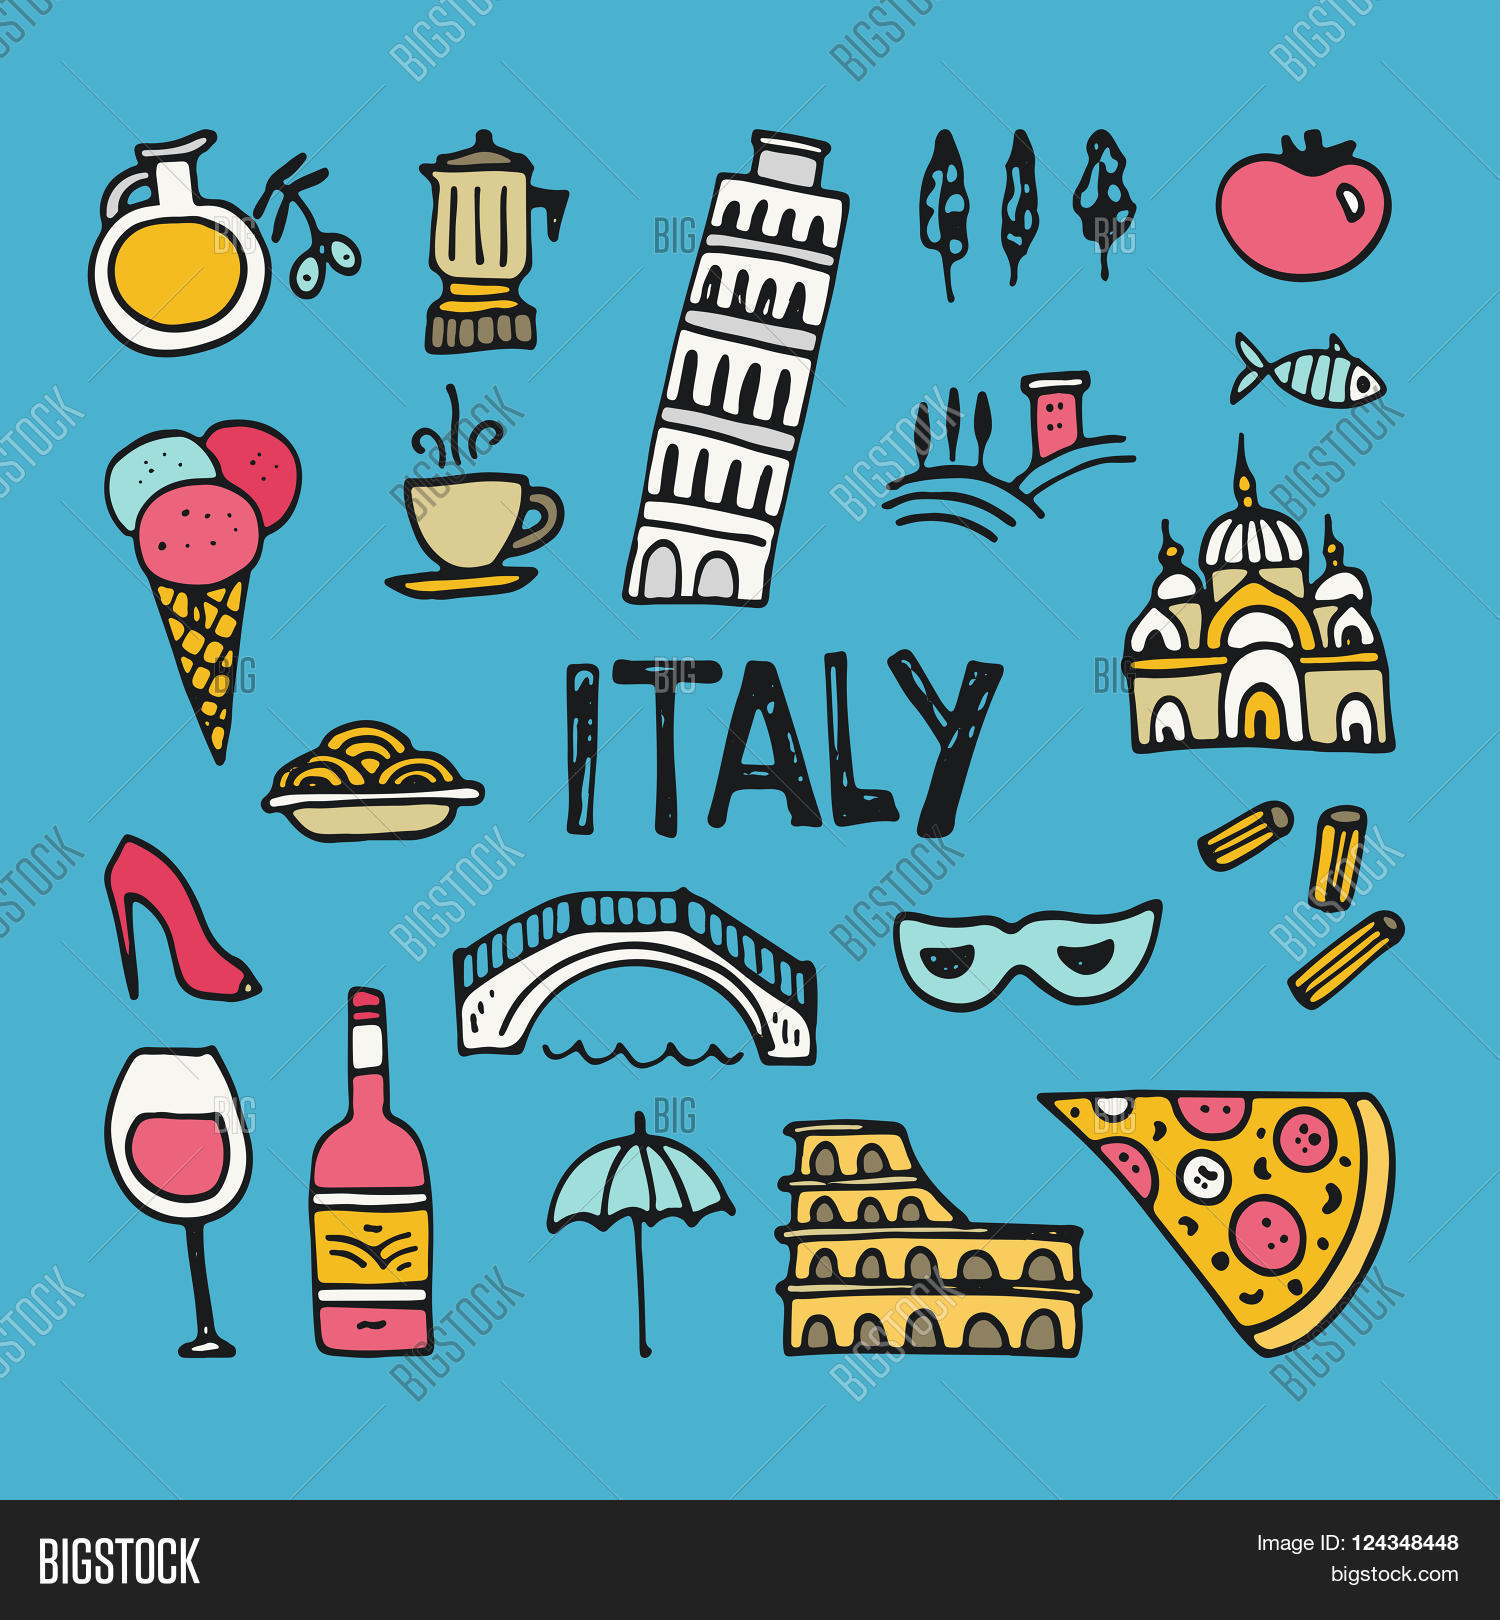 Italian Symbols Vector Photo Free Trial Bigstock